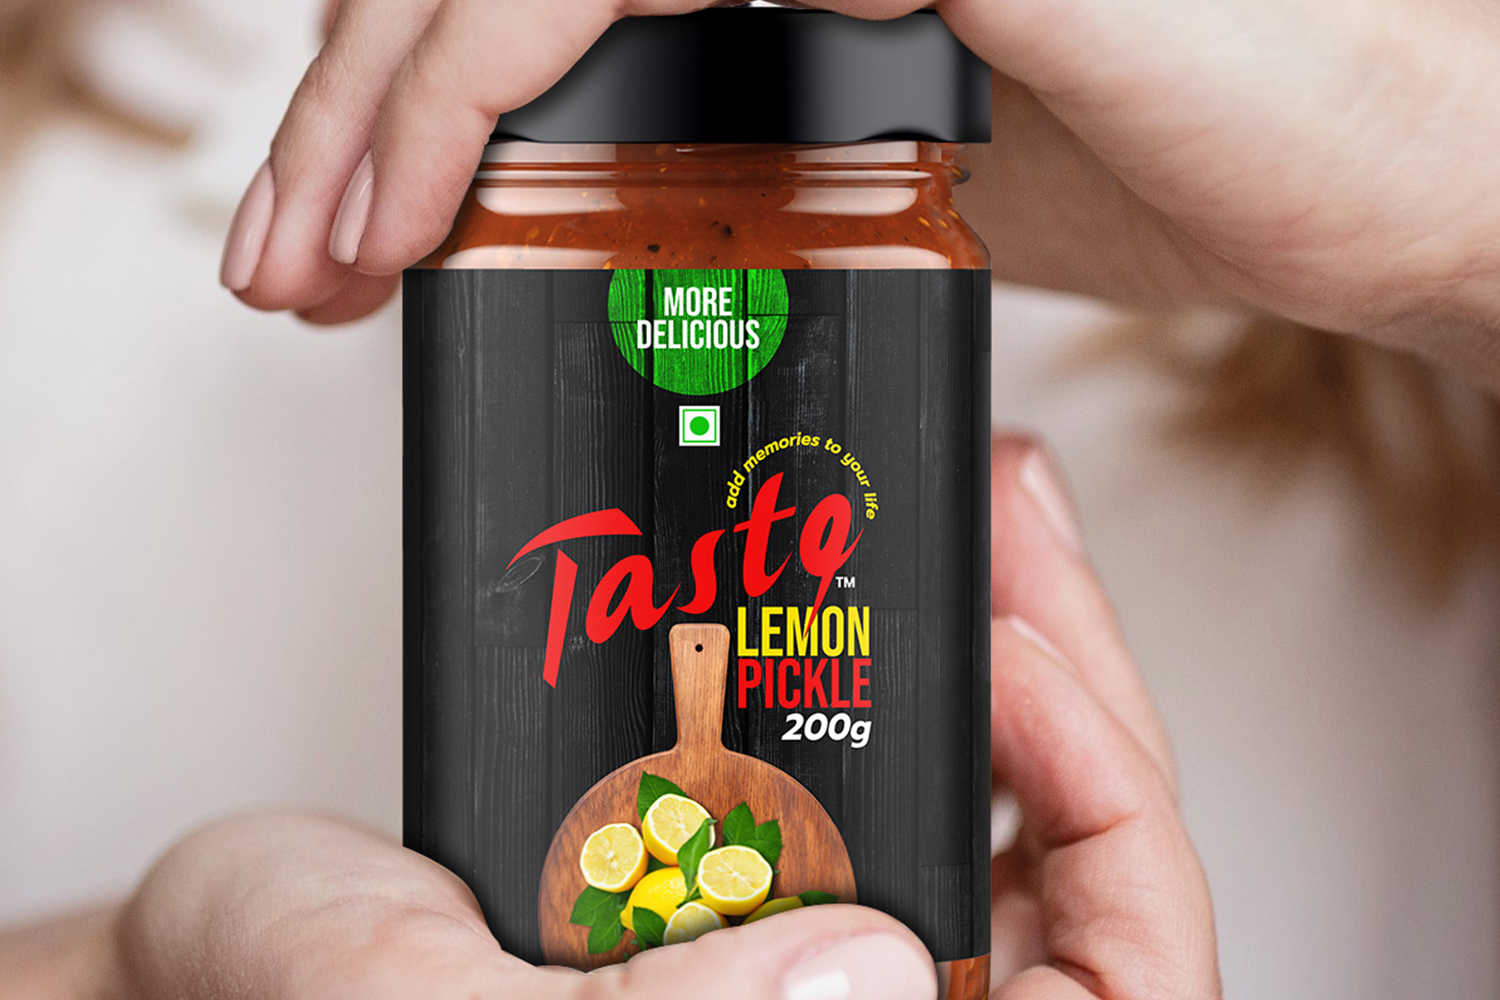 Owl Design Labs Creates Branding and Packaging Design for Taste9 Pickle